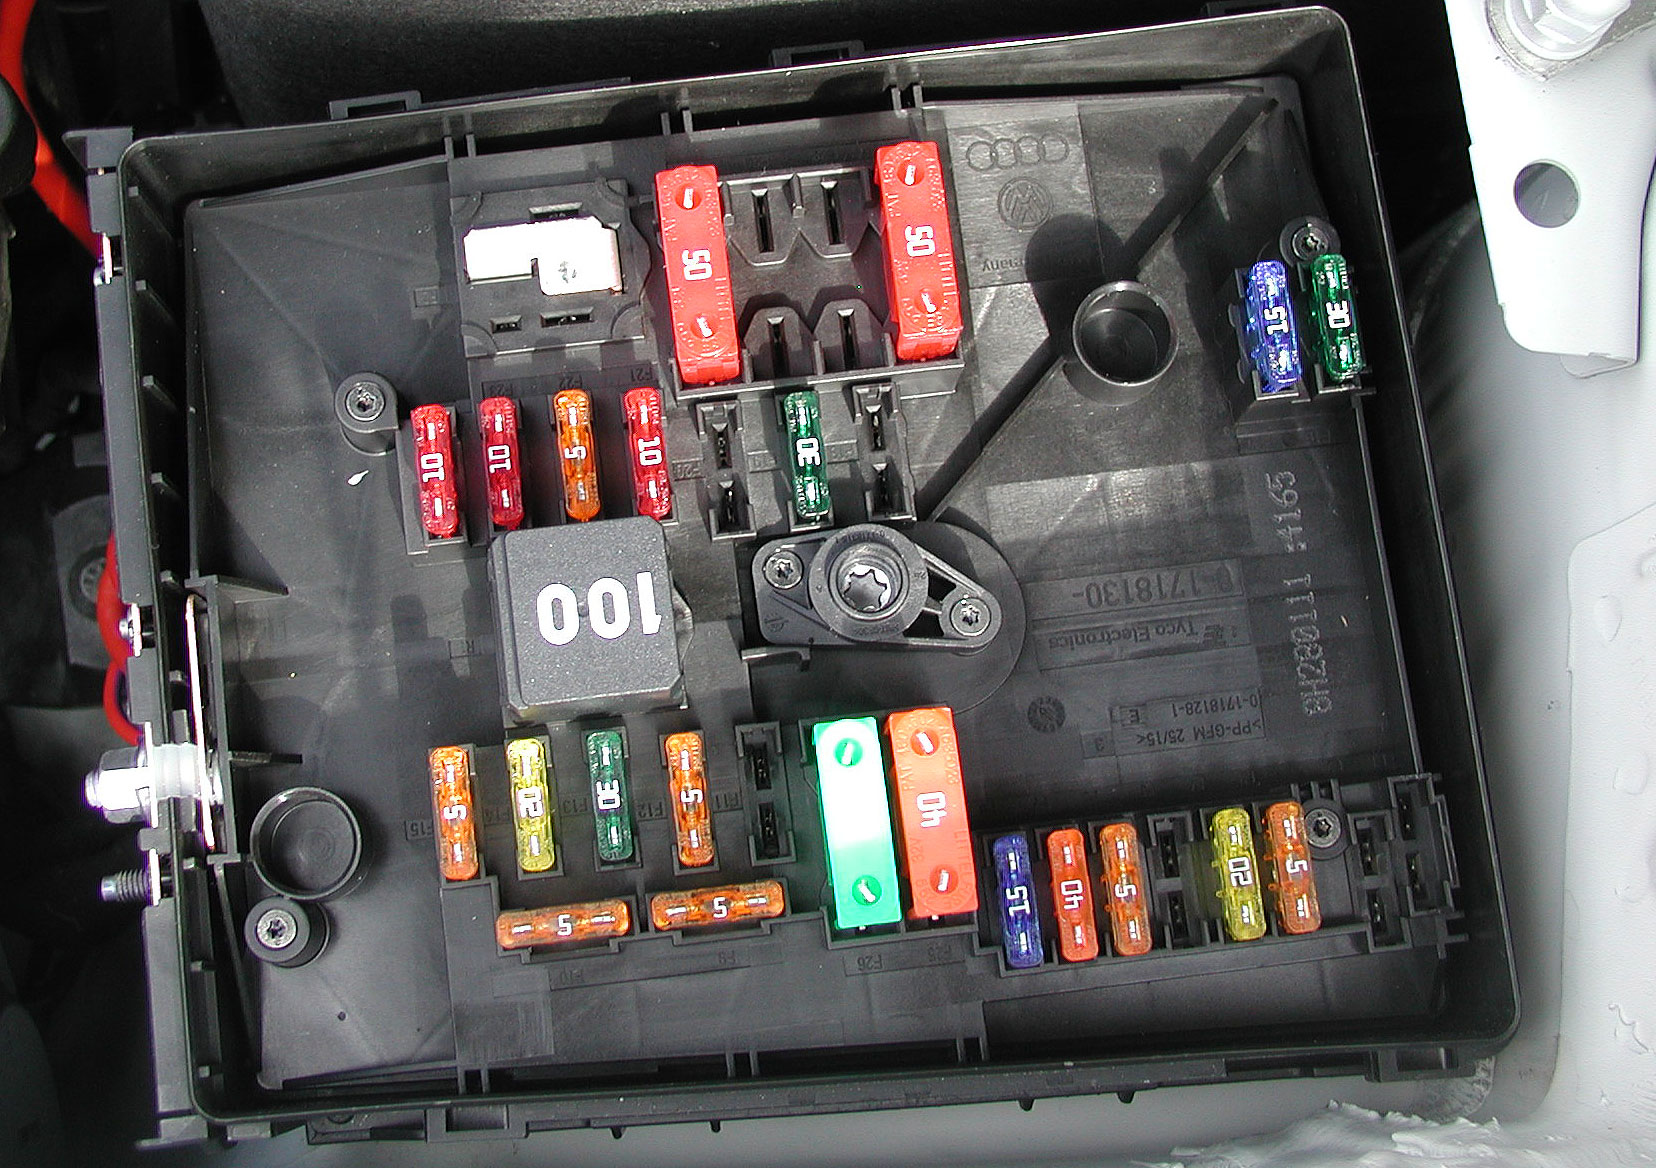 hight resolution of 2011 golf tdi fuse box picture please tdiclub forums mazda rx8 fuse box vw golf 6 2011 fuse box